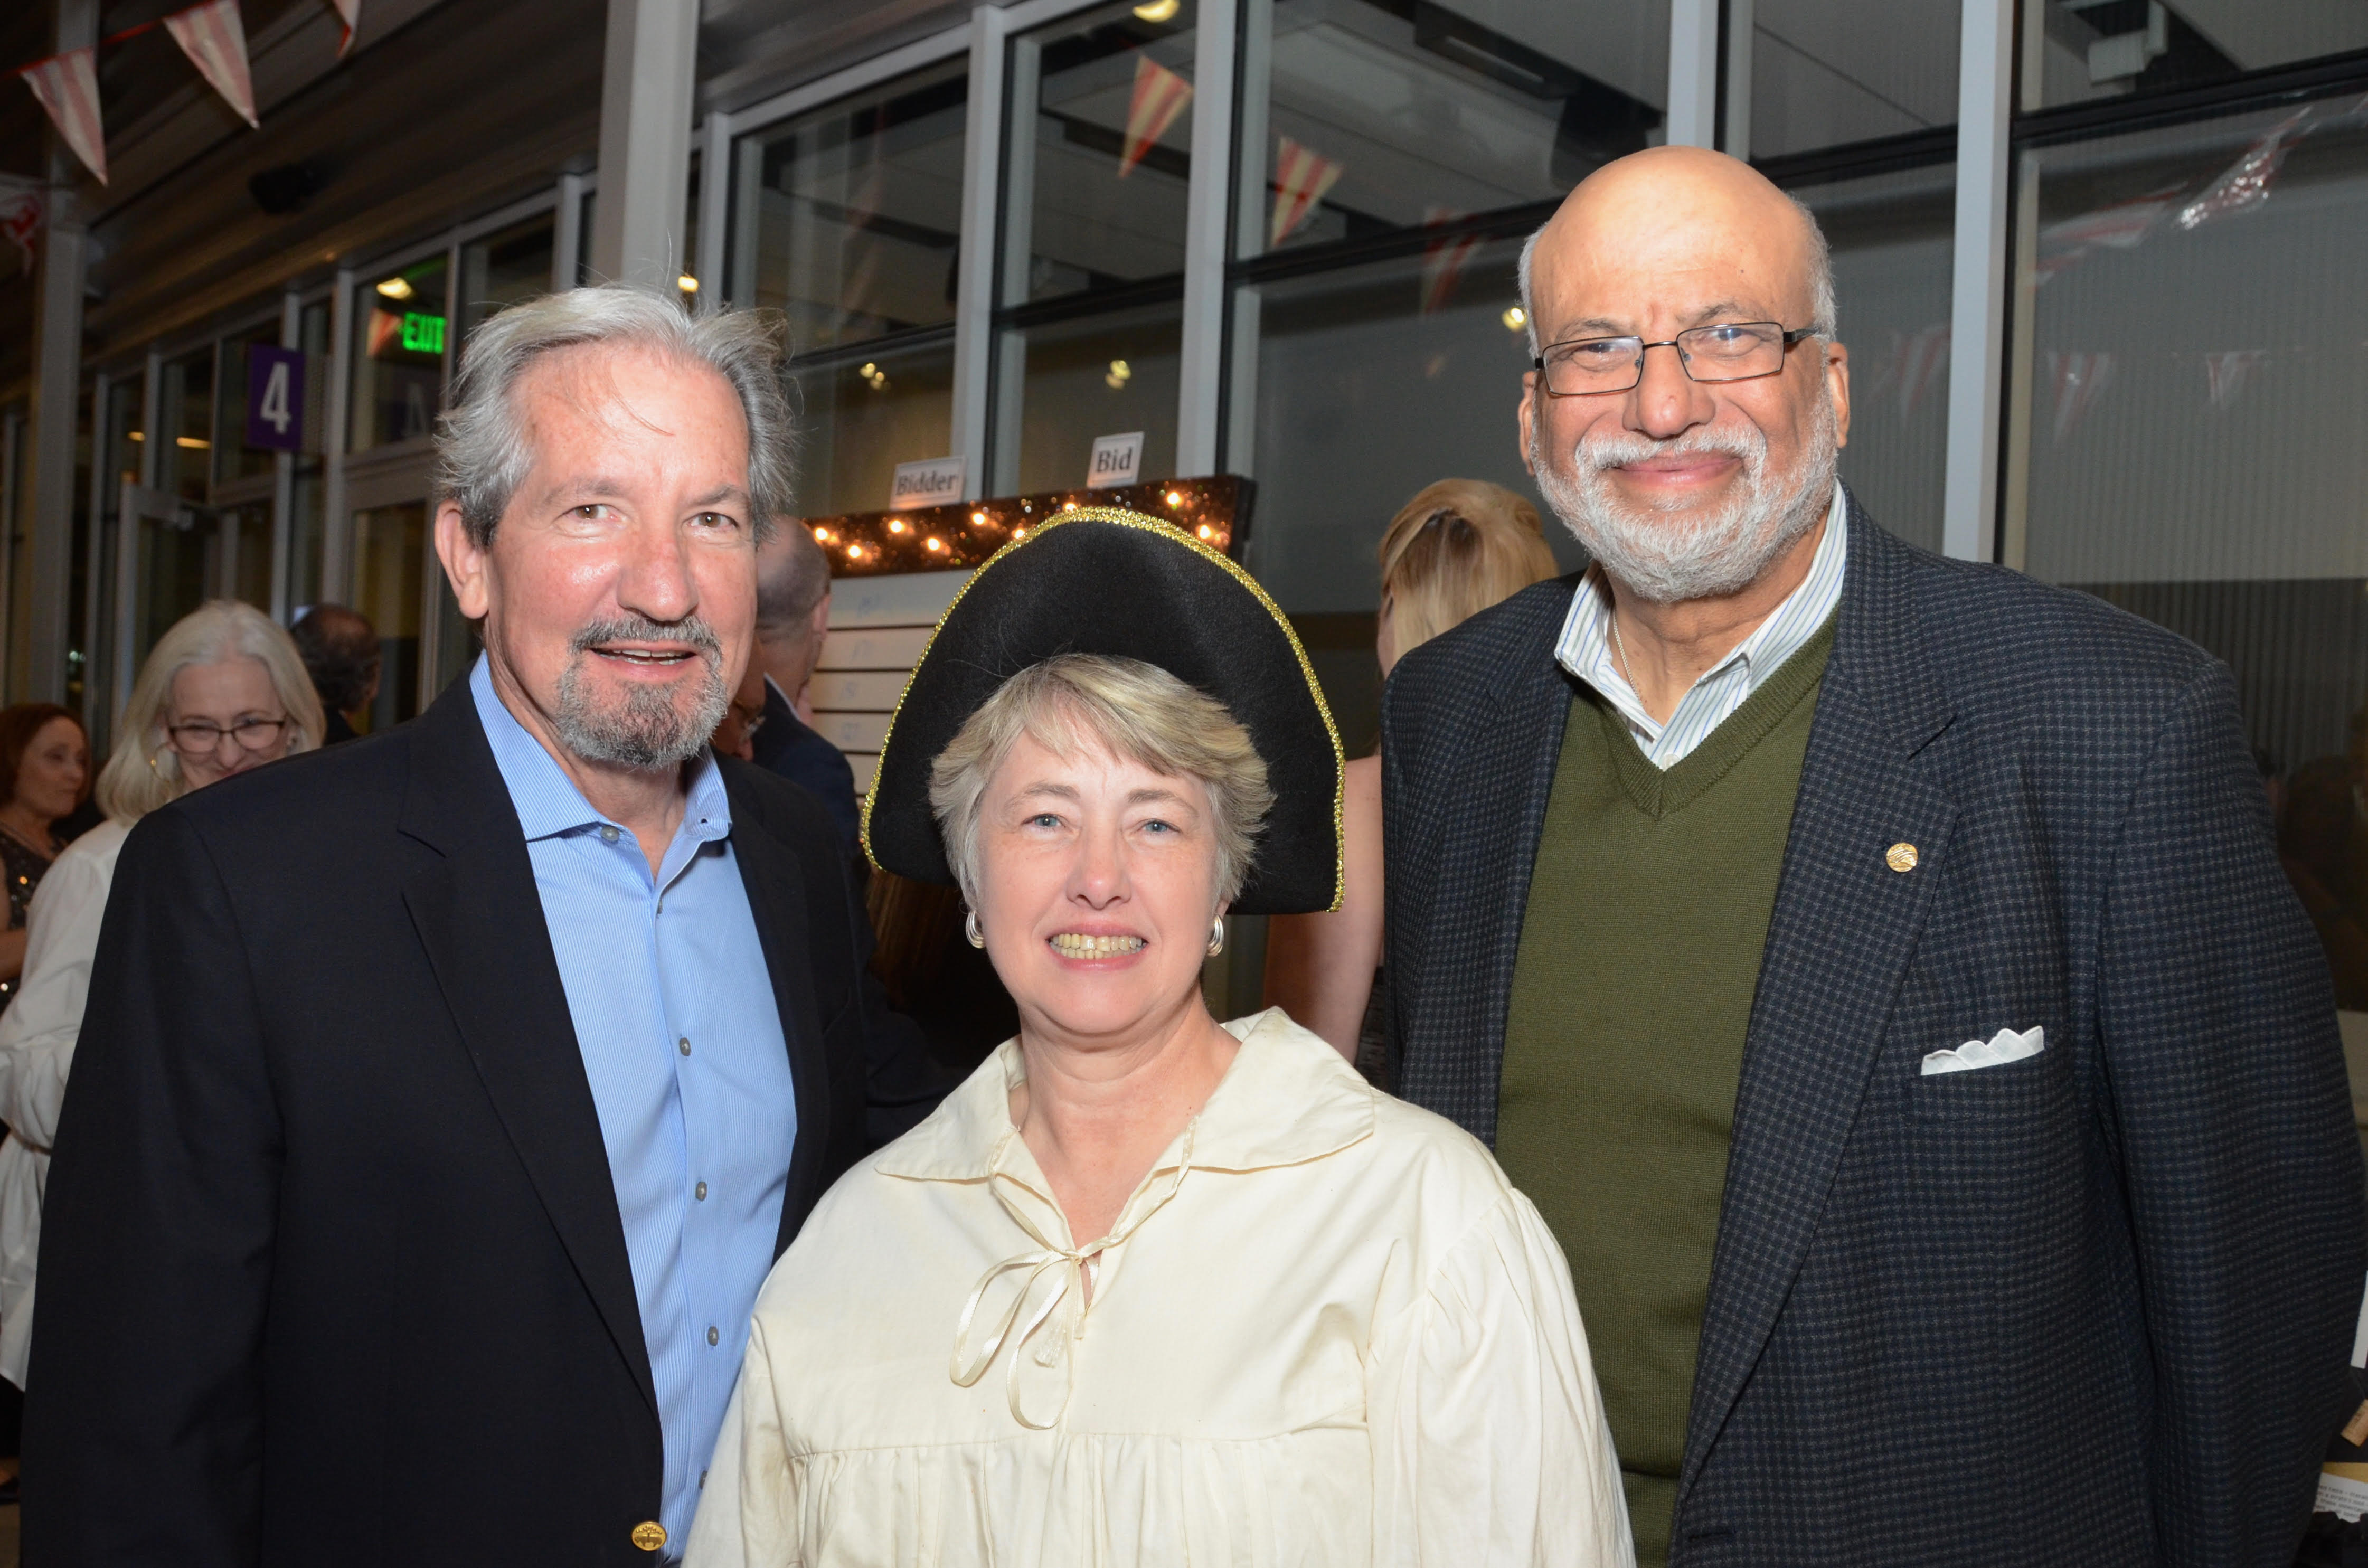 Terrence O'Rourke, Annise Parker, Larry Payne